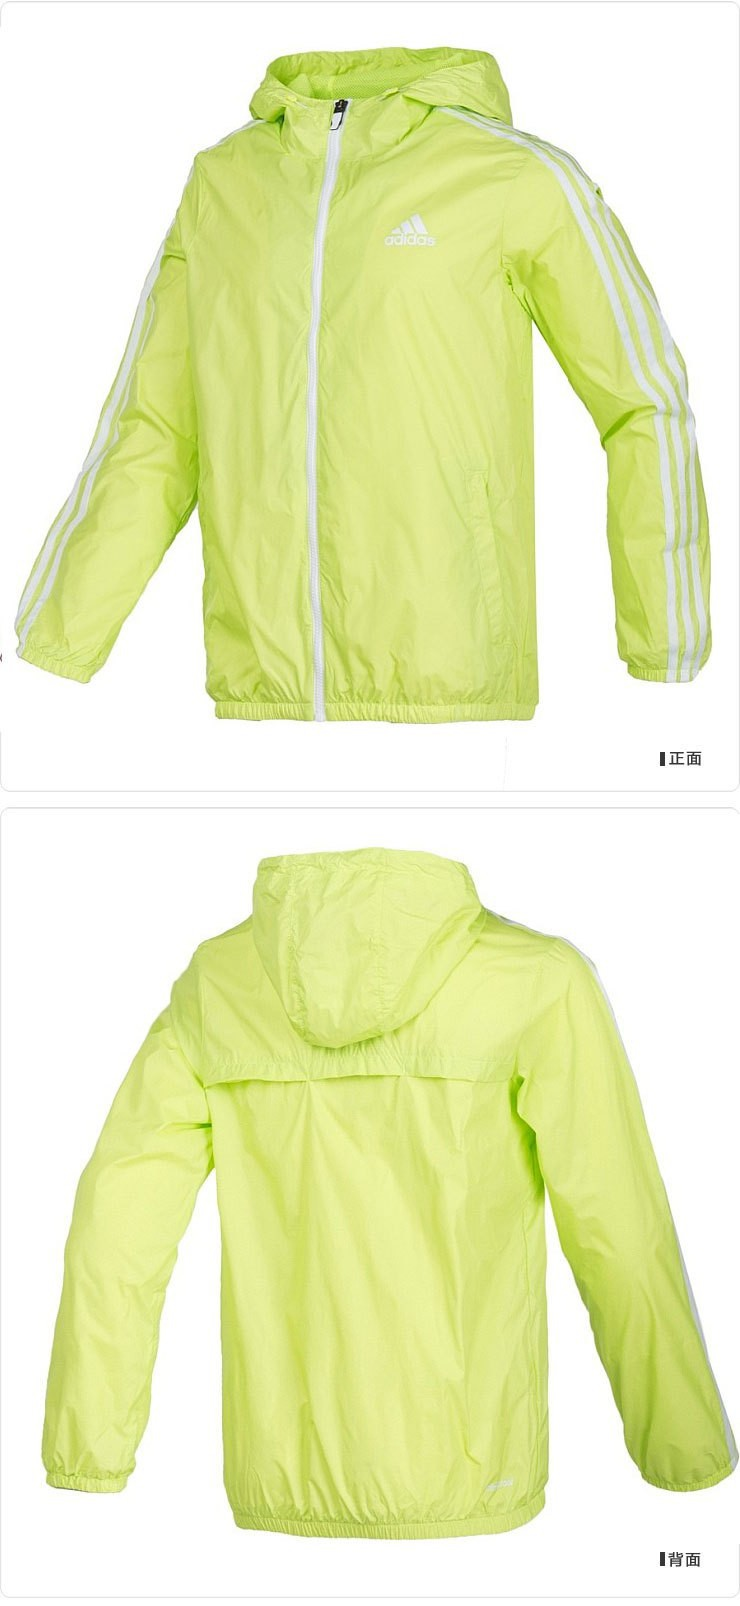 Мужская ветровка Top qualtiy  015 men adidaselieds Hoodies Sweatshirts jackets coat